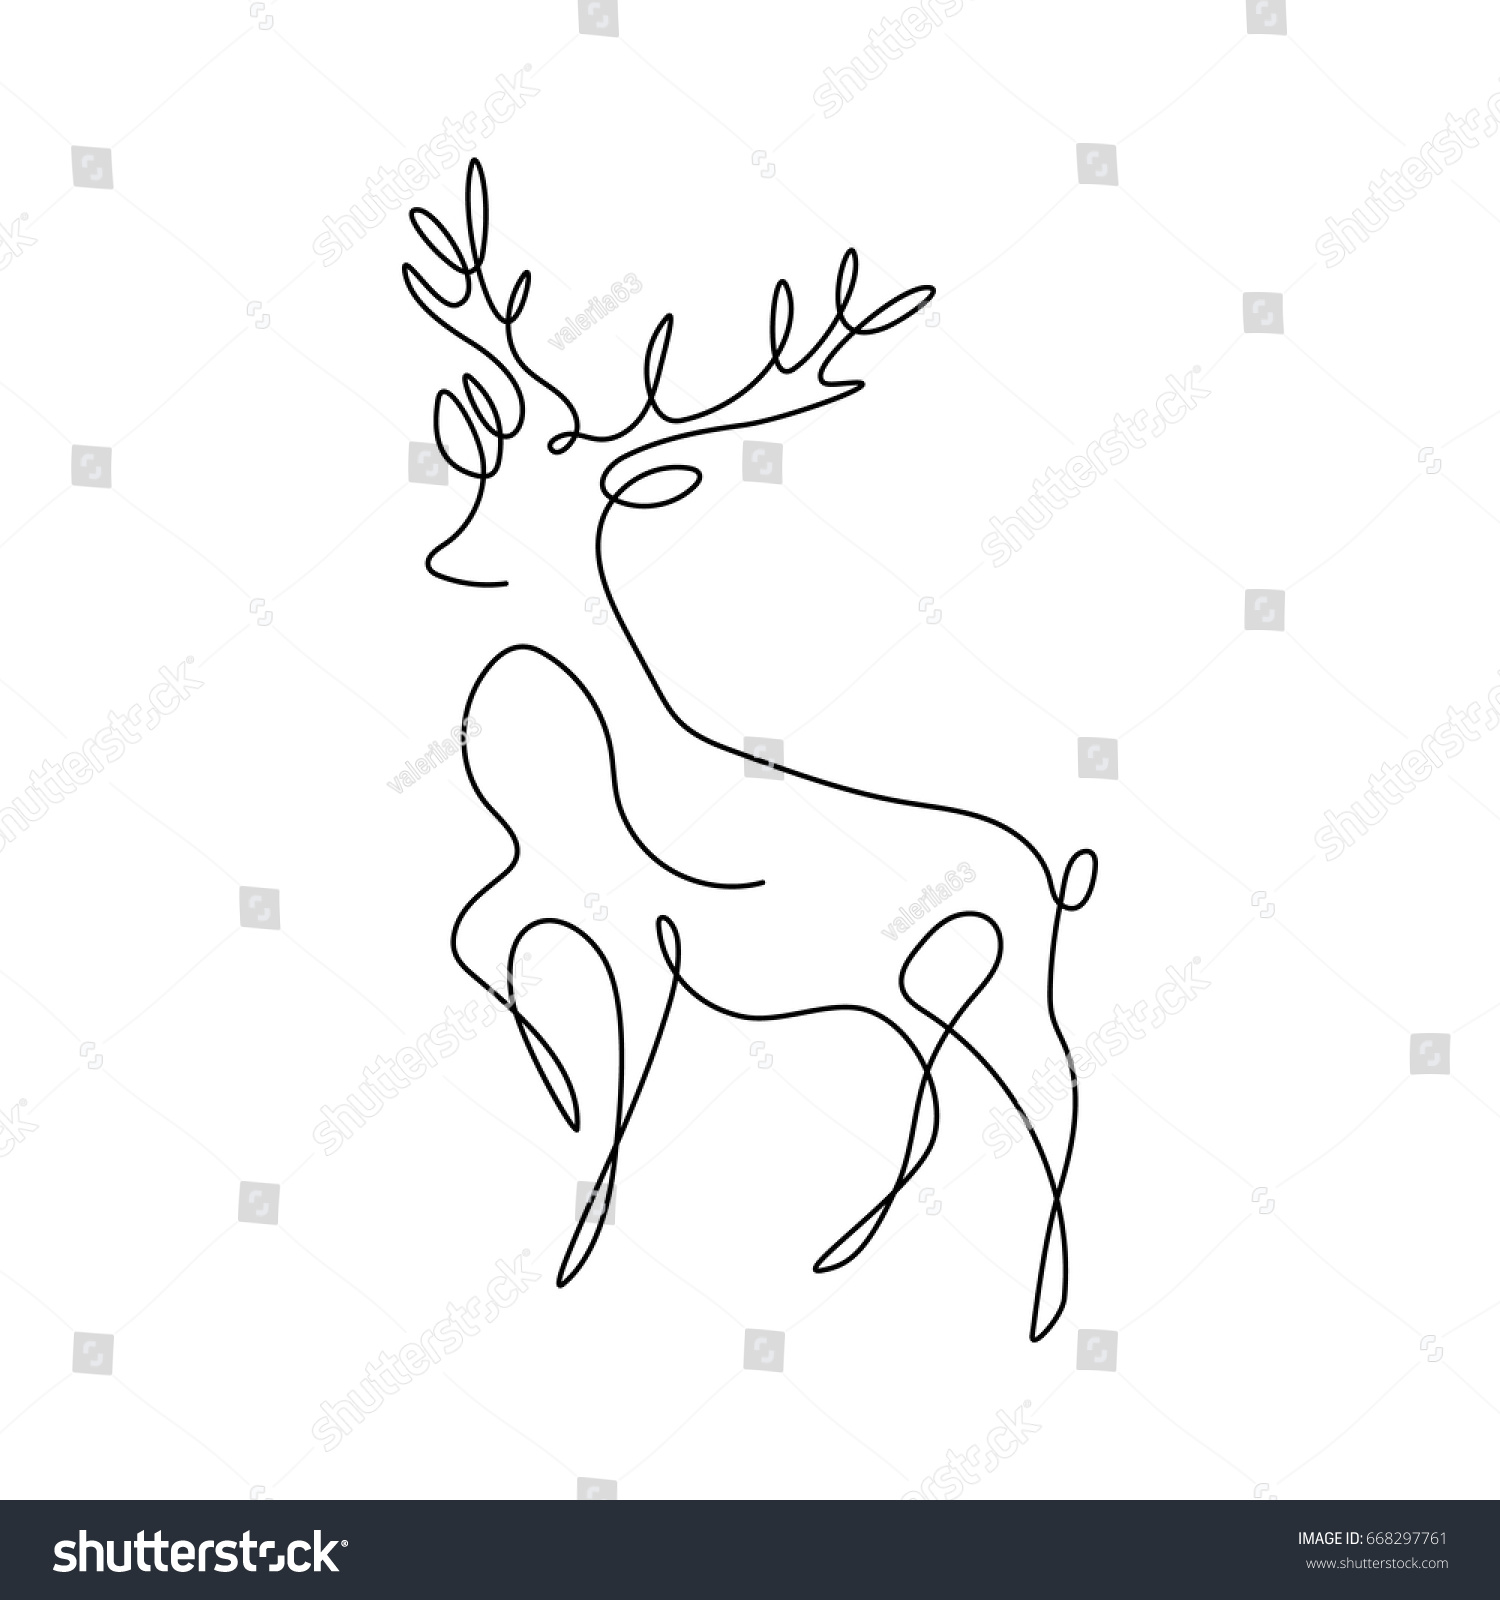 One Line Design : One line design silhouette deerhand drawn stock vector